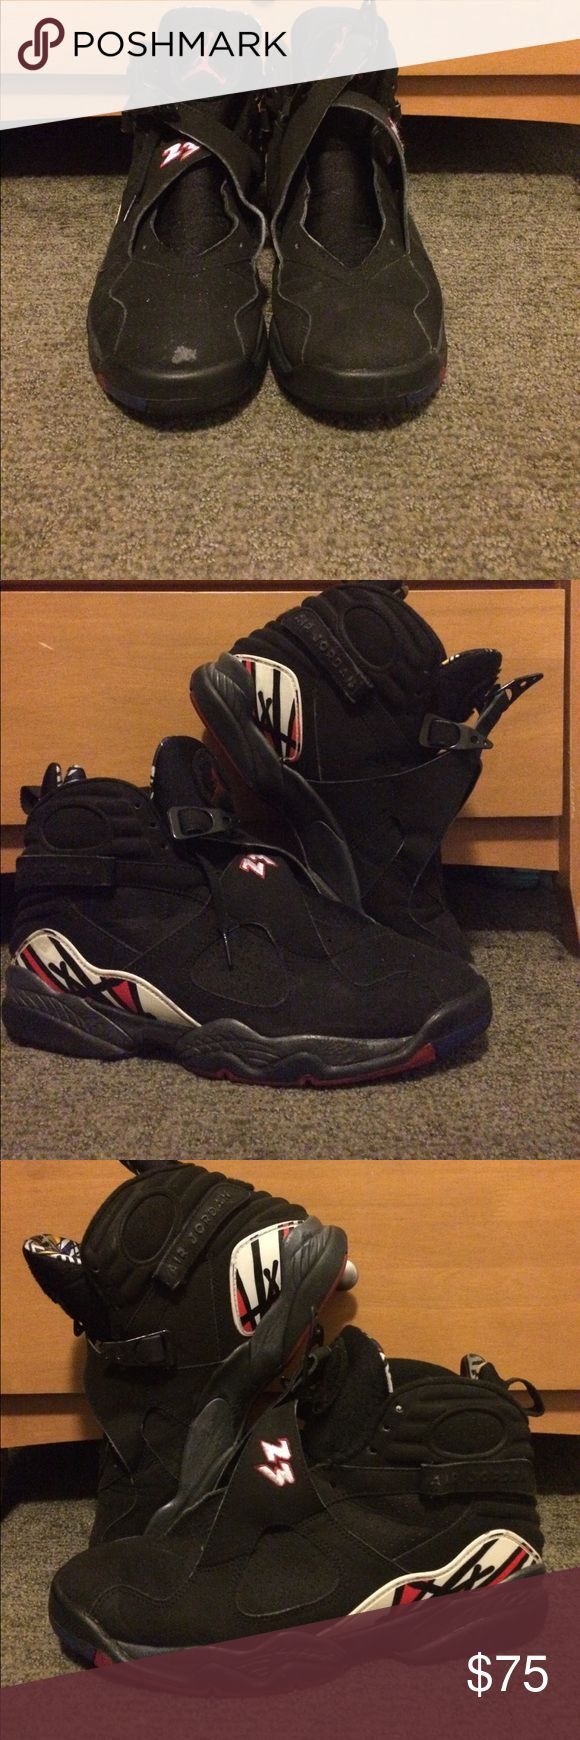 Retro Air Jordan VIII - Playoffs - Size 12M - 7/10 condition - Minor signs of wear and creasing - Biggest blemish is scuff on right toe - Inside velcro straps show a little more wear      than outside ones - Will be cleaned, washed, and midsoles will be      repainted before shipping Air Jordan Shoes Sneakers